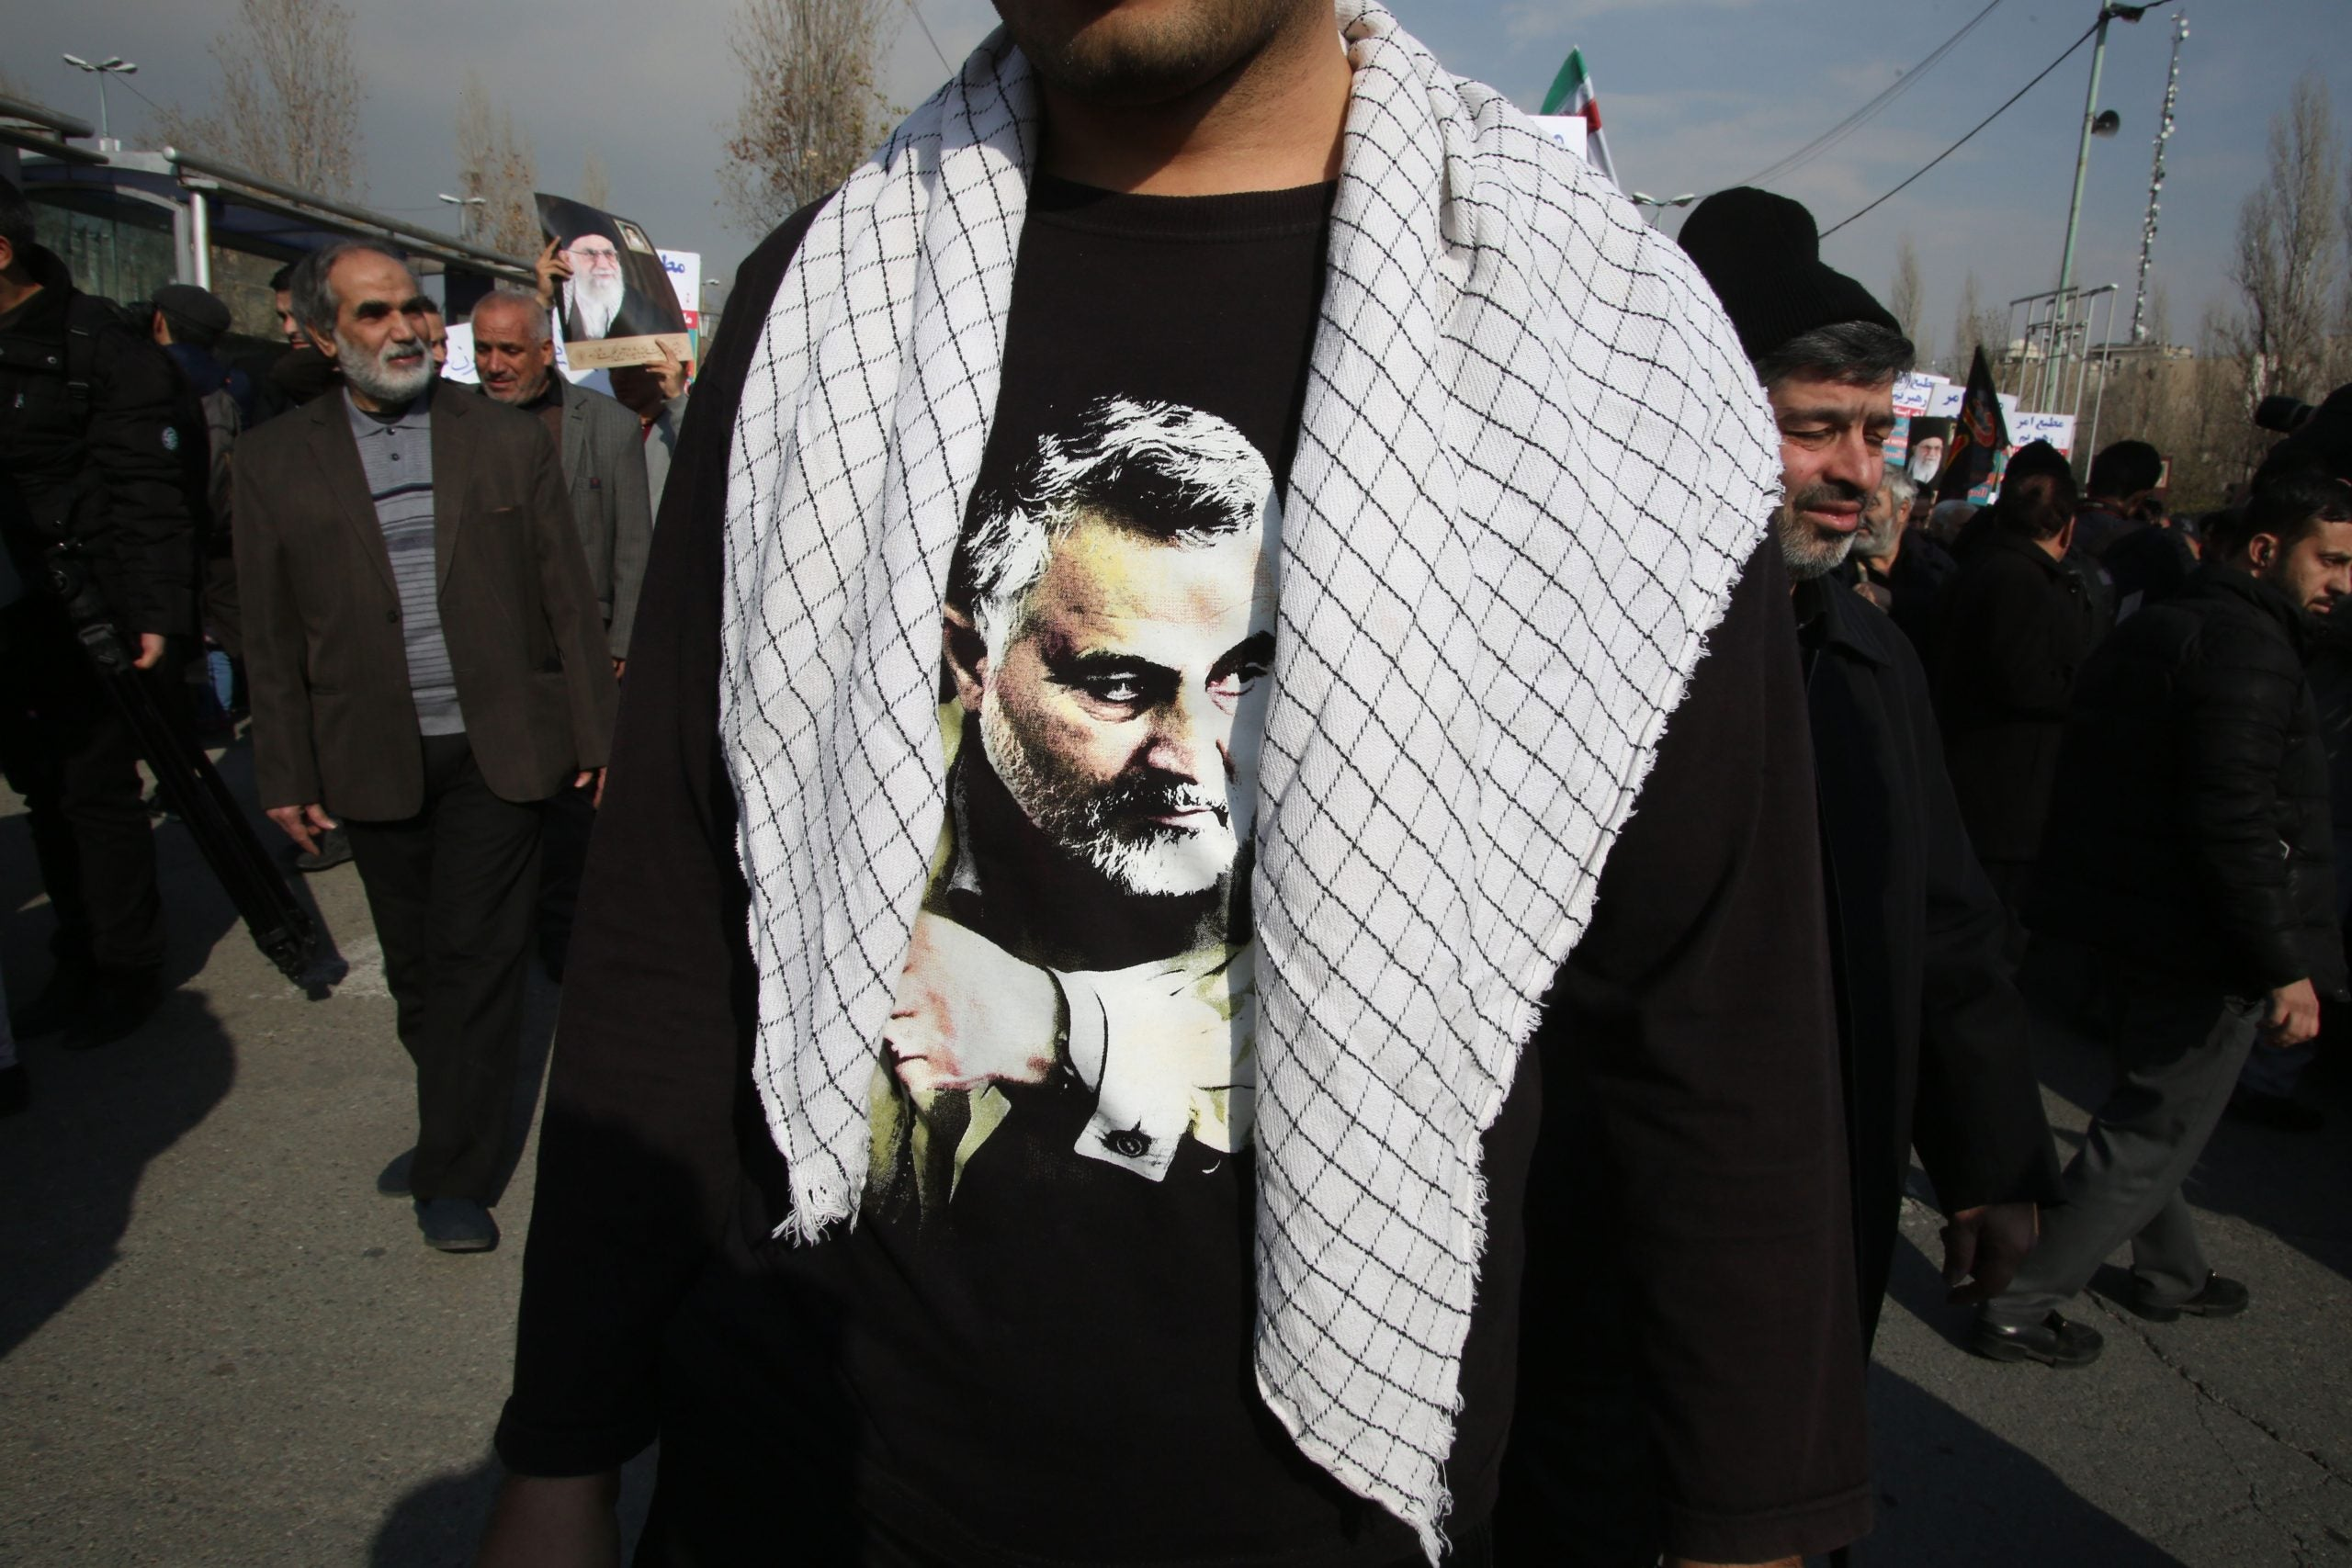 The killing of Qasem Soleimani shows America has not learned from the Iraq War